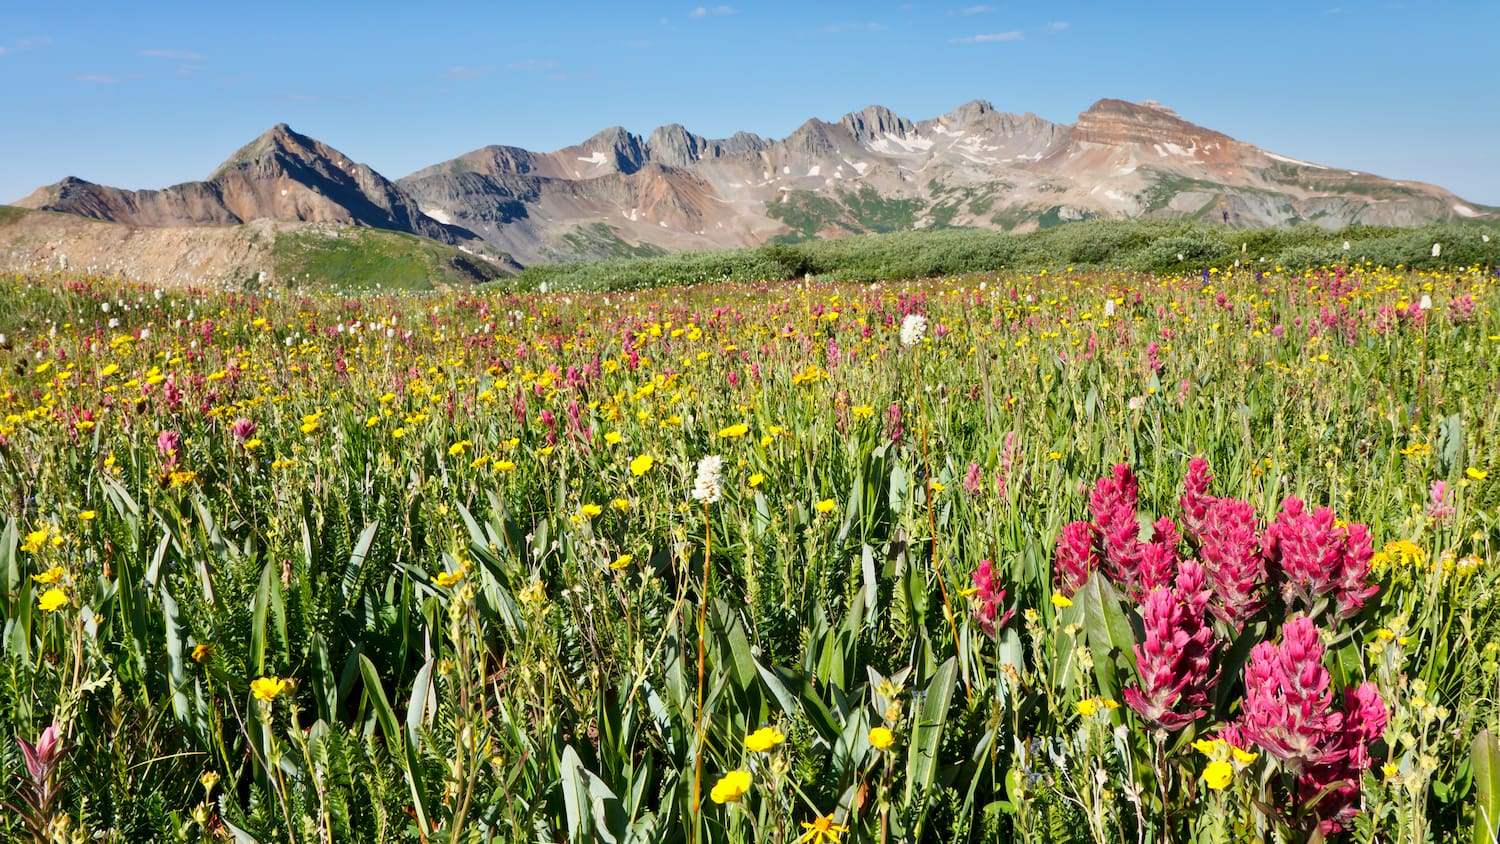 wildflowers in front of mountain range